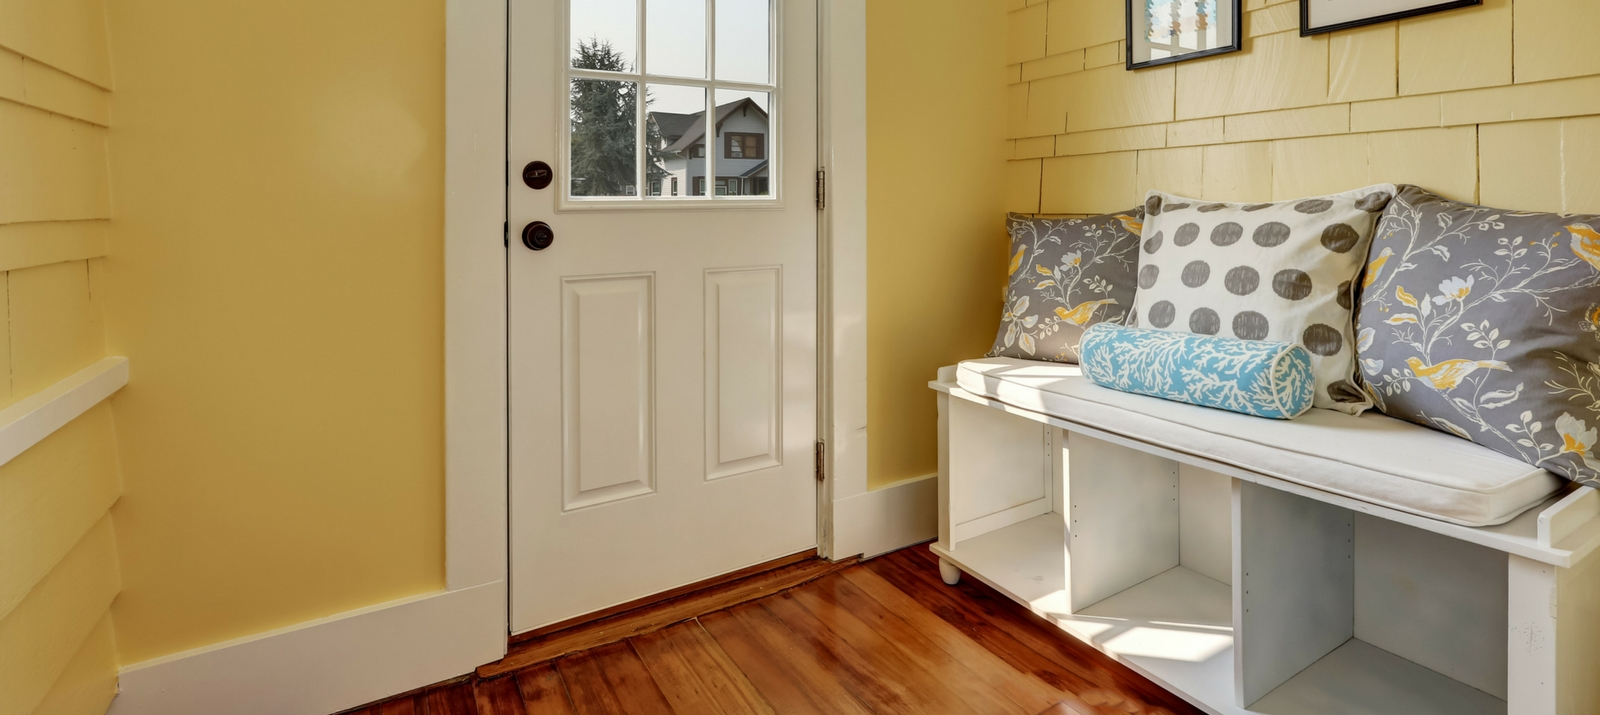 Superbe Entryway Storage Hacks, Ideas, And Solutions: White Storage Bench With  Cubbies, Wheels